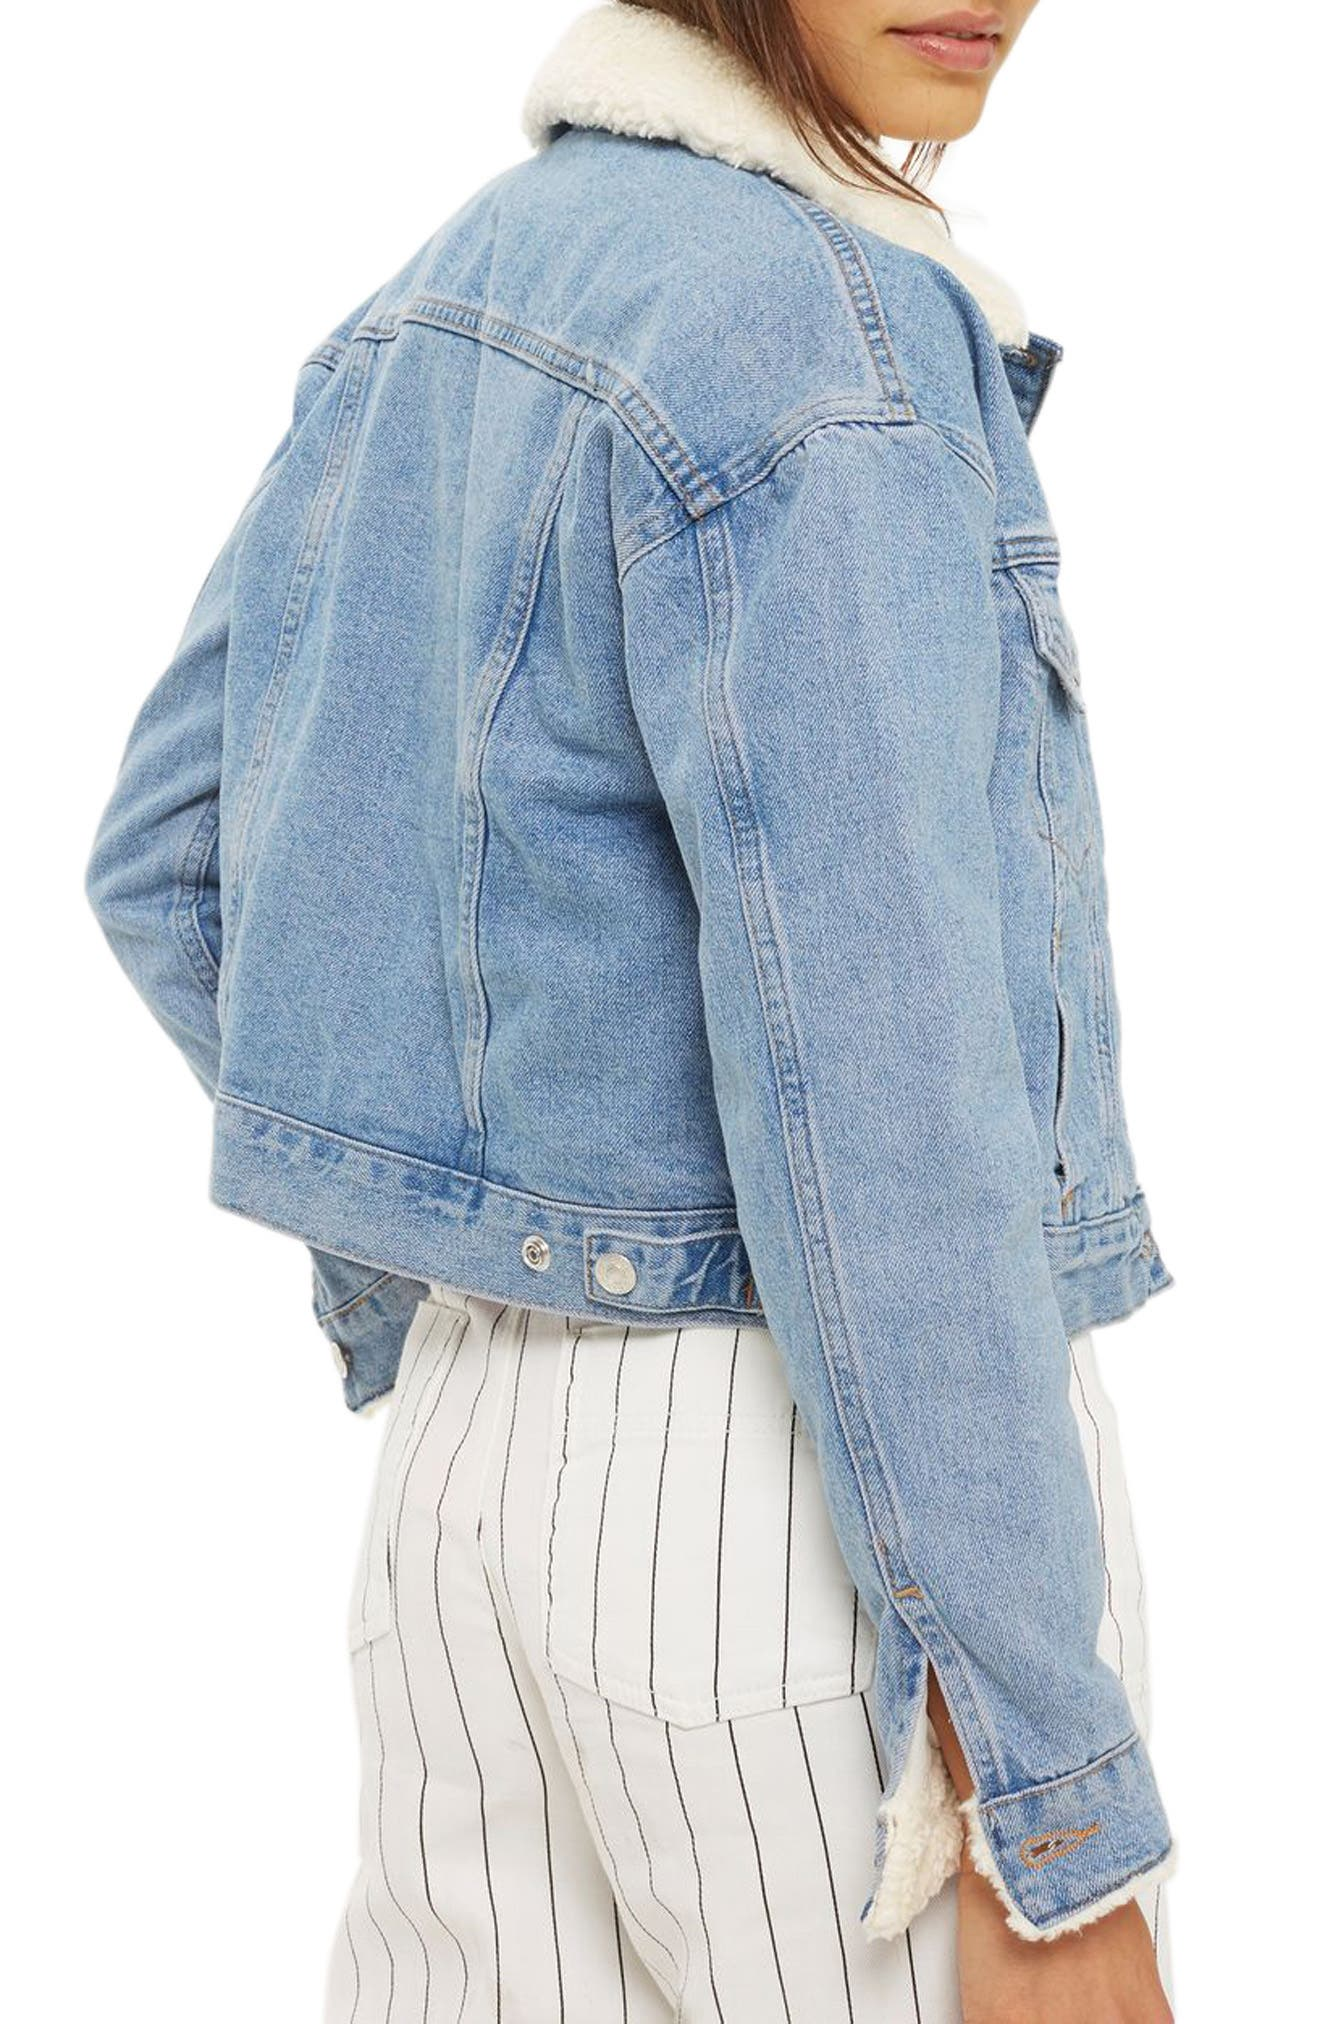 Tilda Borg Denim Jacket,                             Alternate thumbnail 2, color,                             Mid Denim